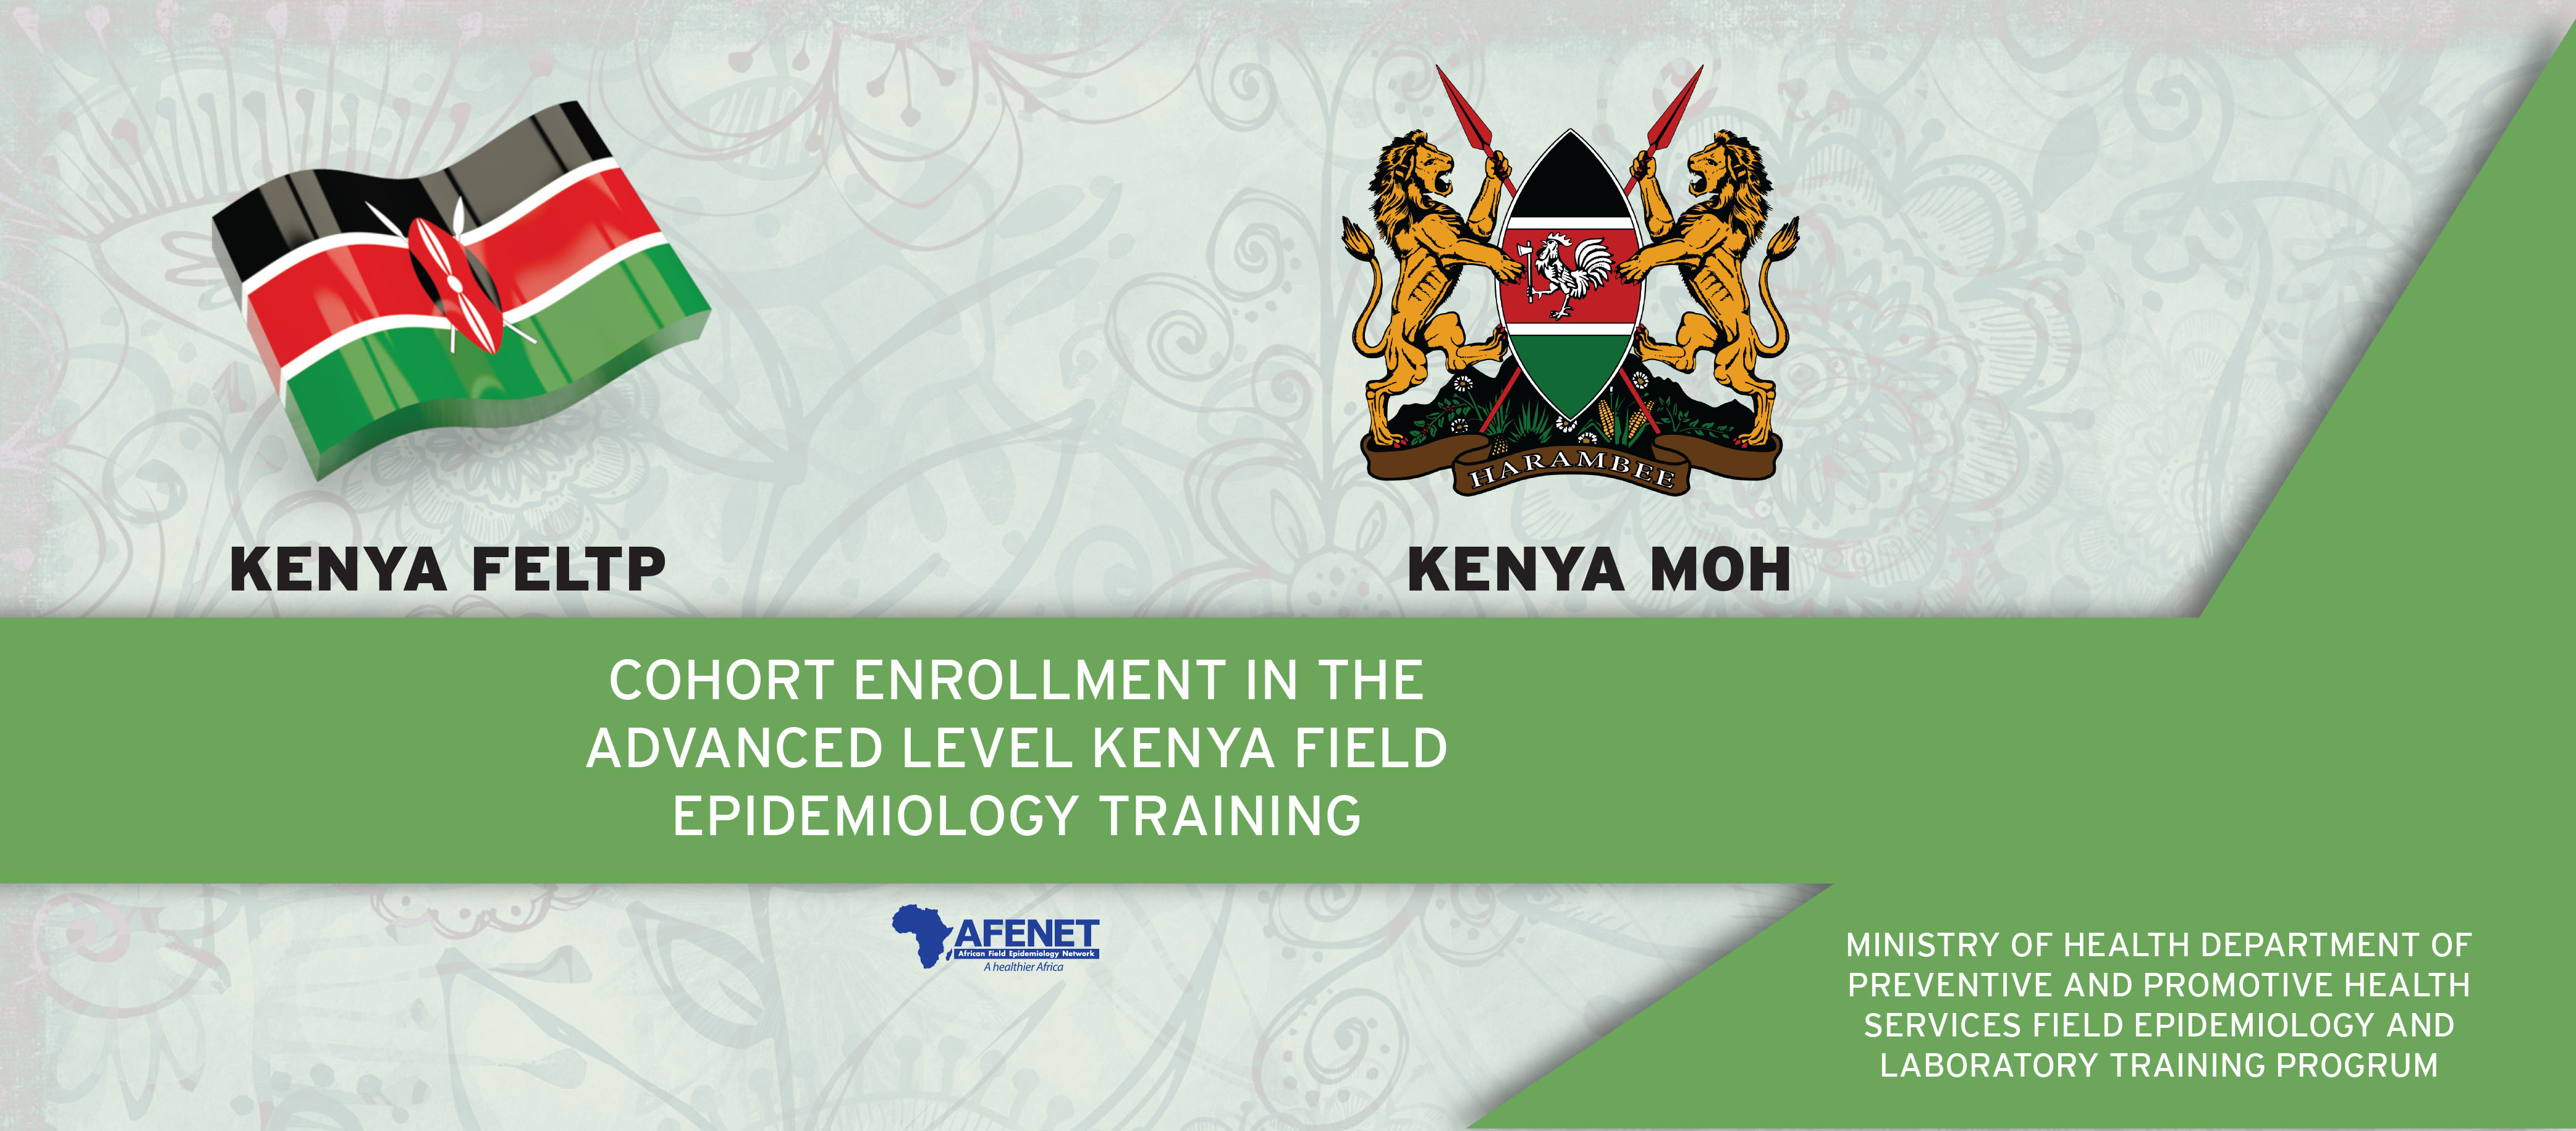 Kenya FELTP Announces Cohort XV Enrollment